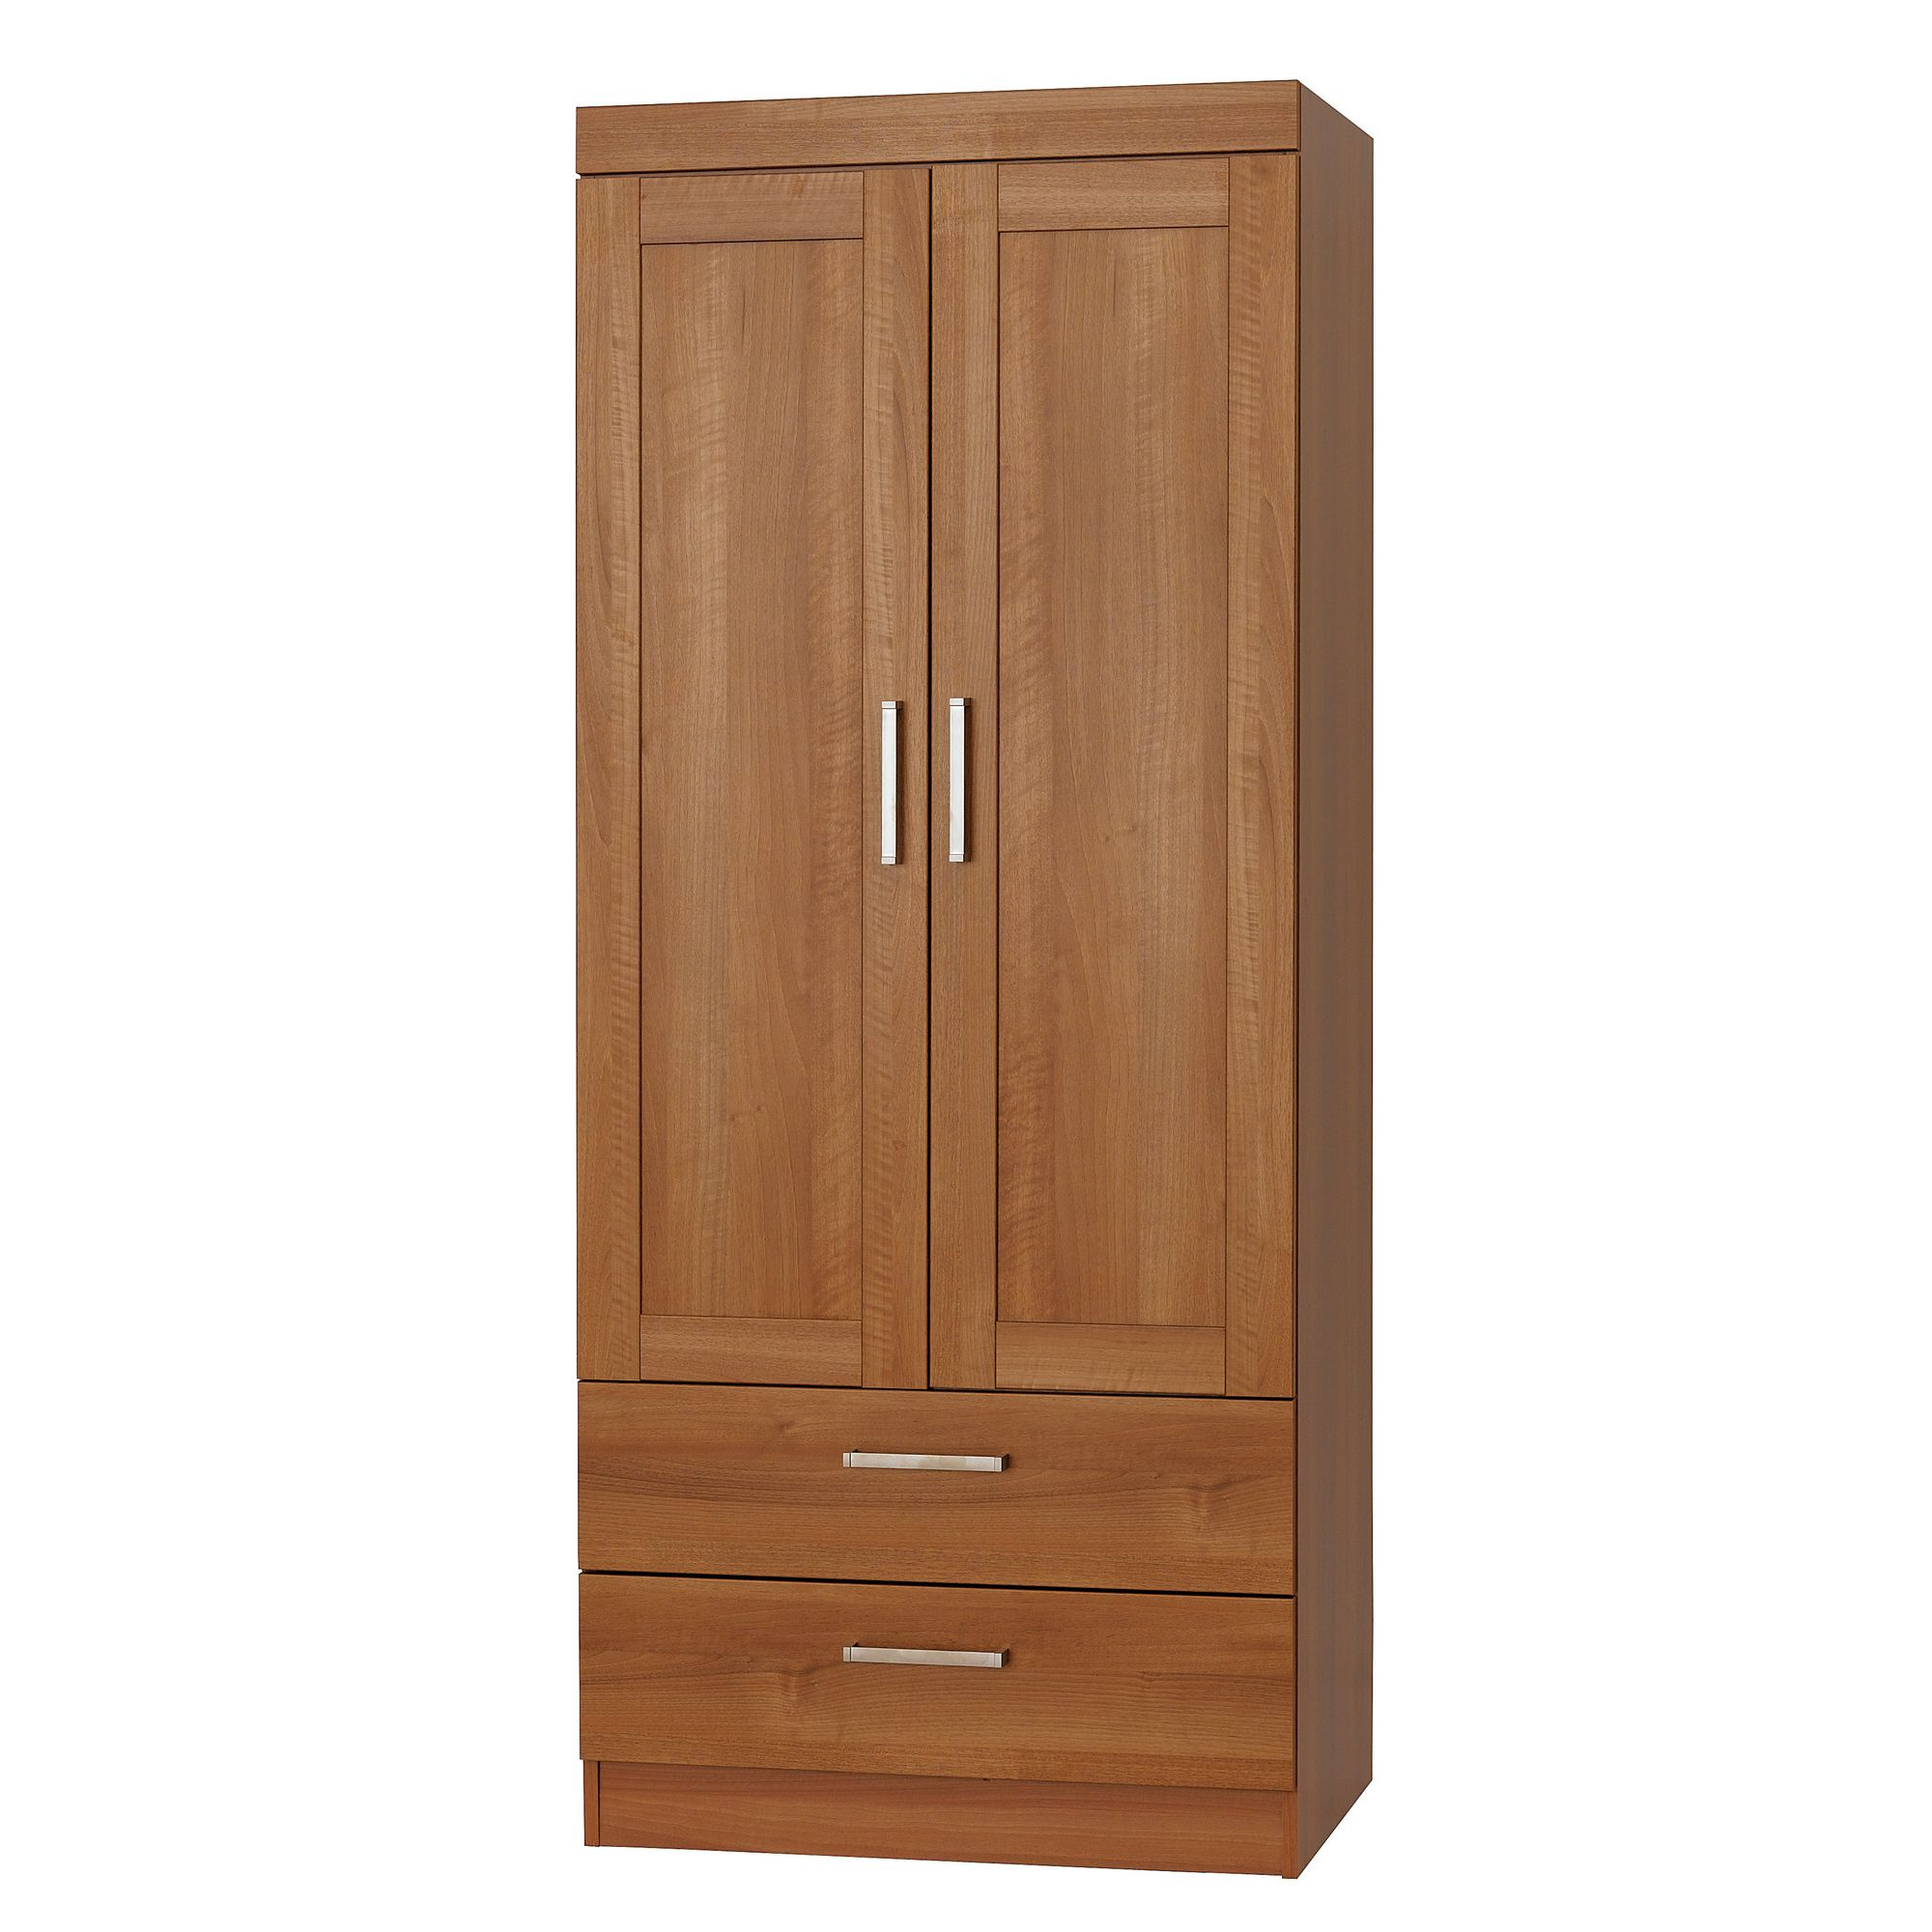 Alto Furniture Visualise Alive Combi Two Drawer Wardrobe in Natural Aida Walnut at Tescos Direct